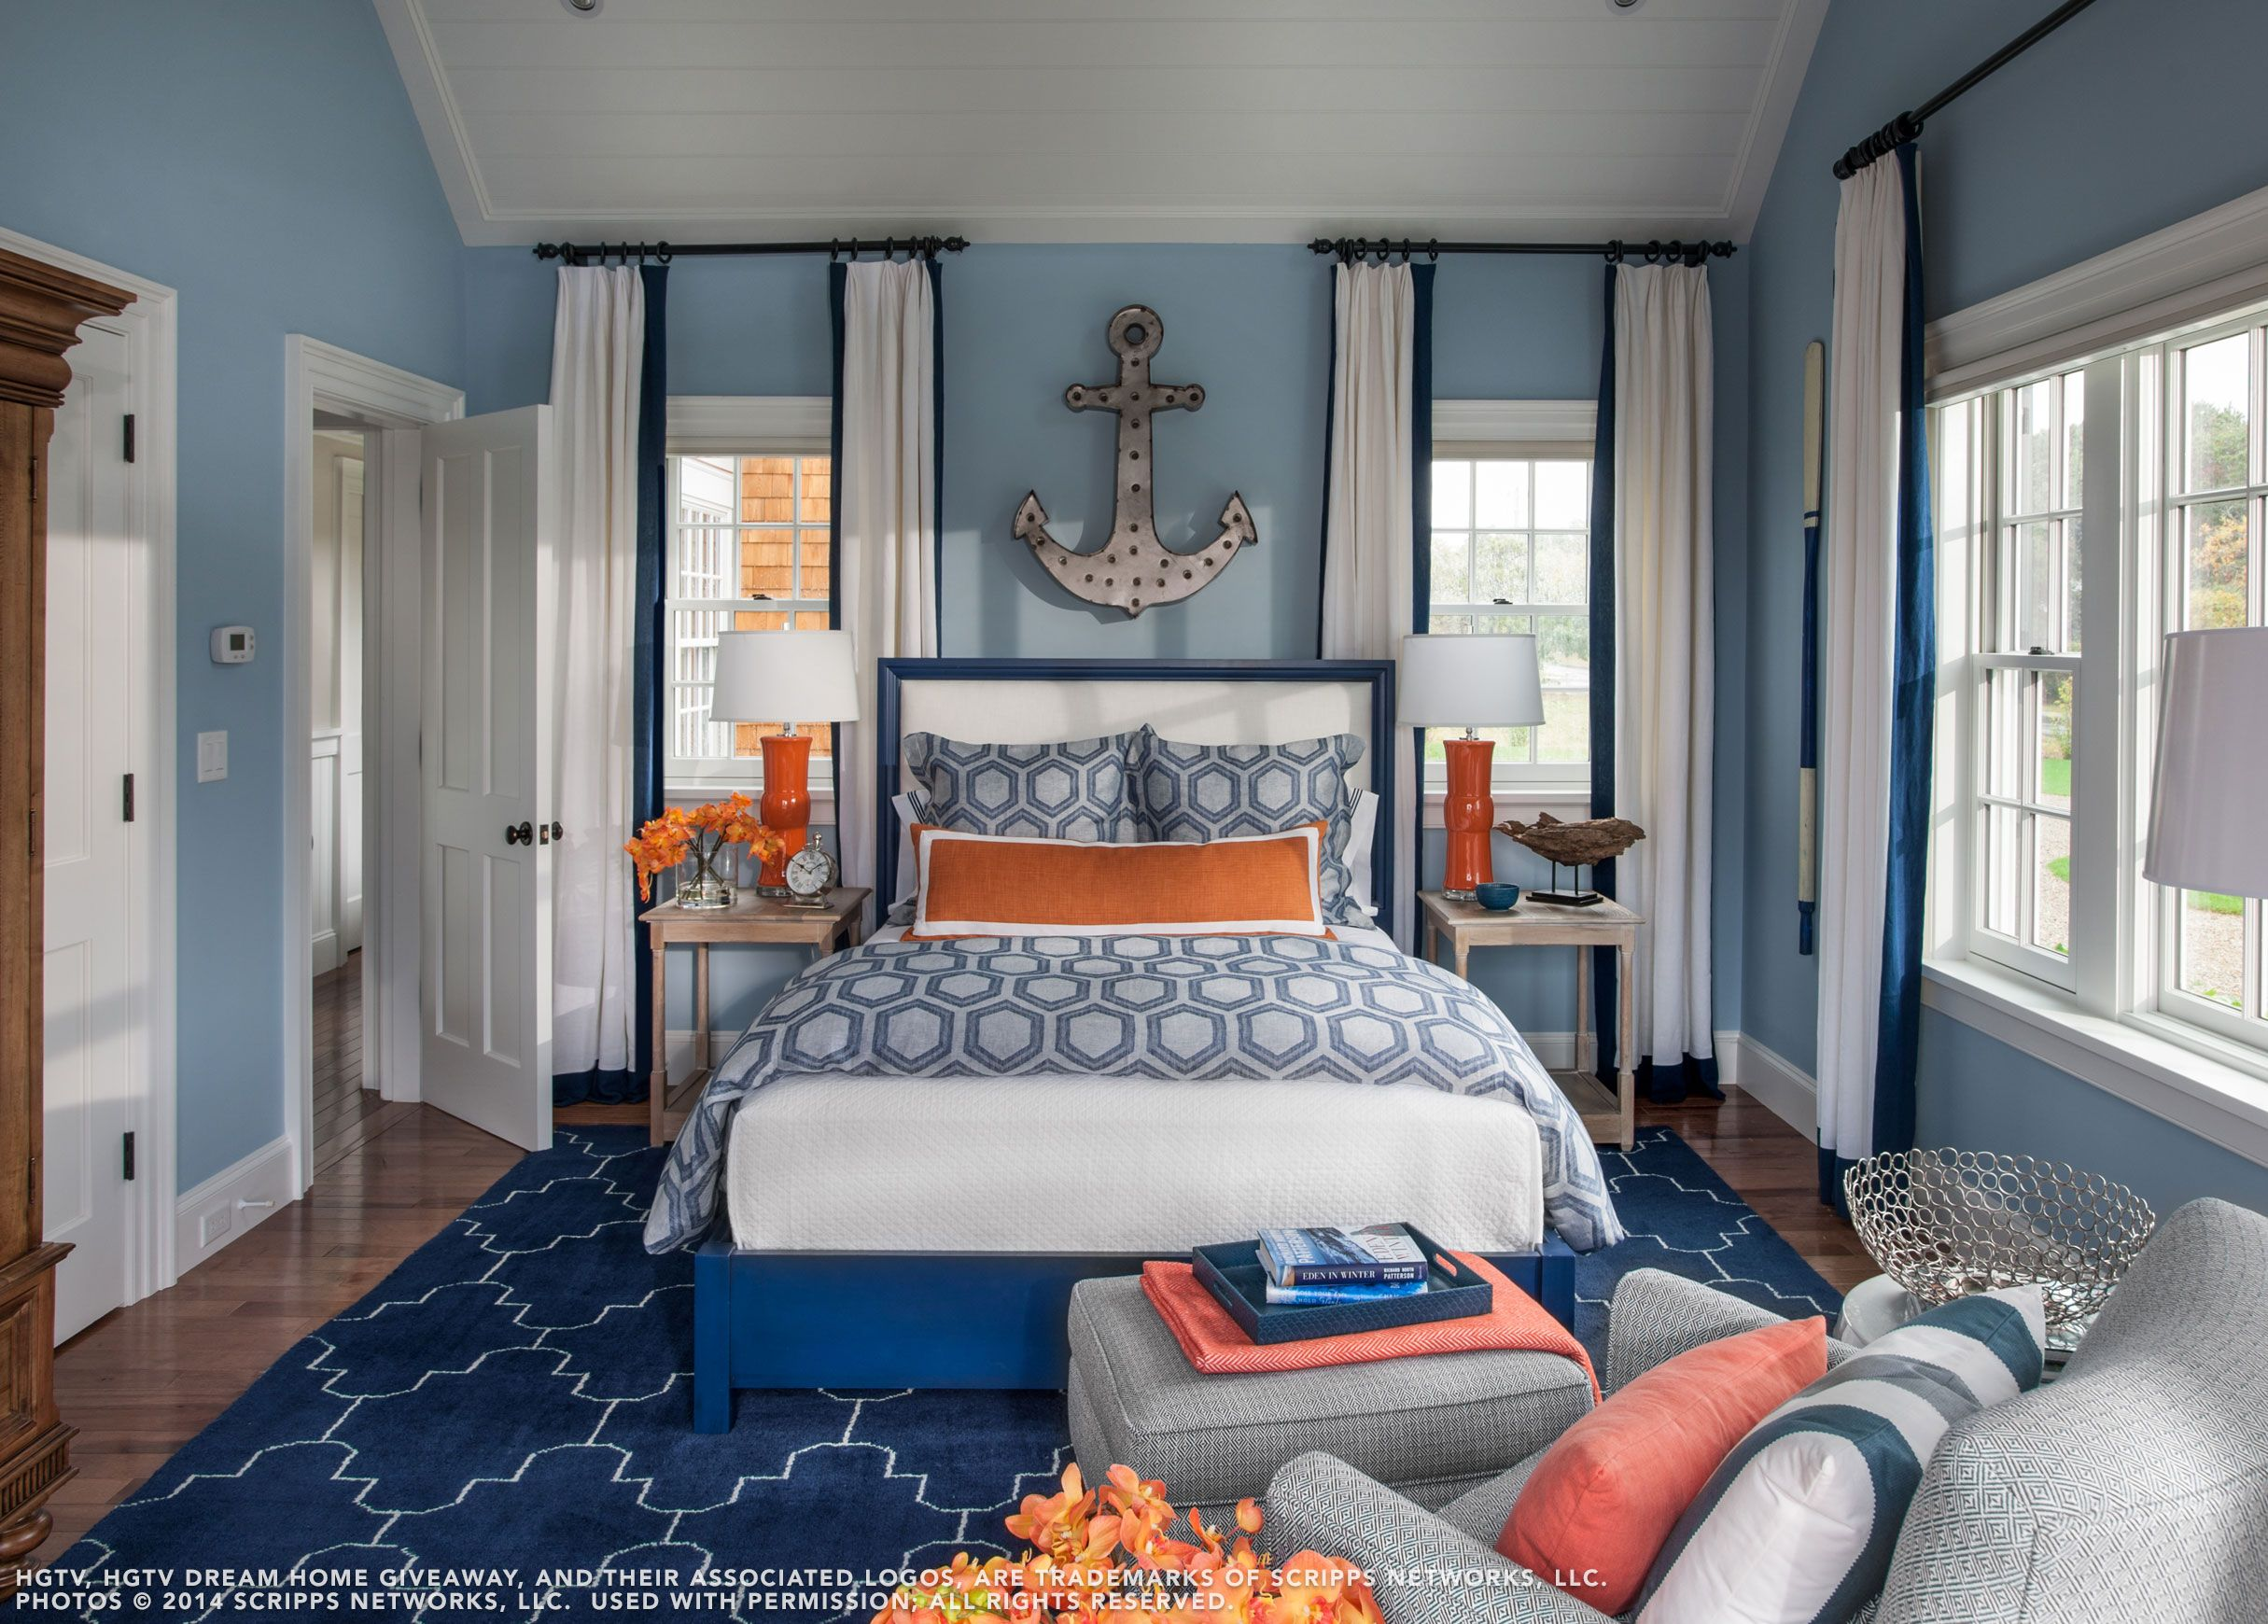 nz diy sophisticated canada bring tremendous then soulful to decorating room how ideas bedroom gh delectable homedesign nautical decor living home enthralling